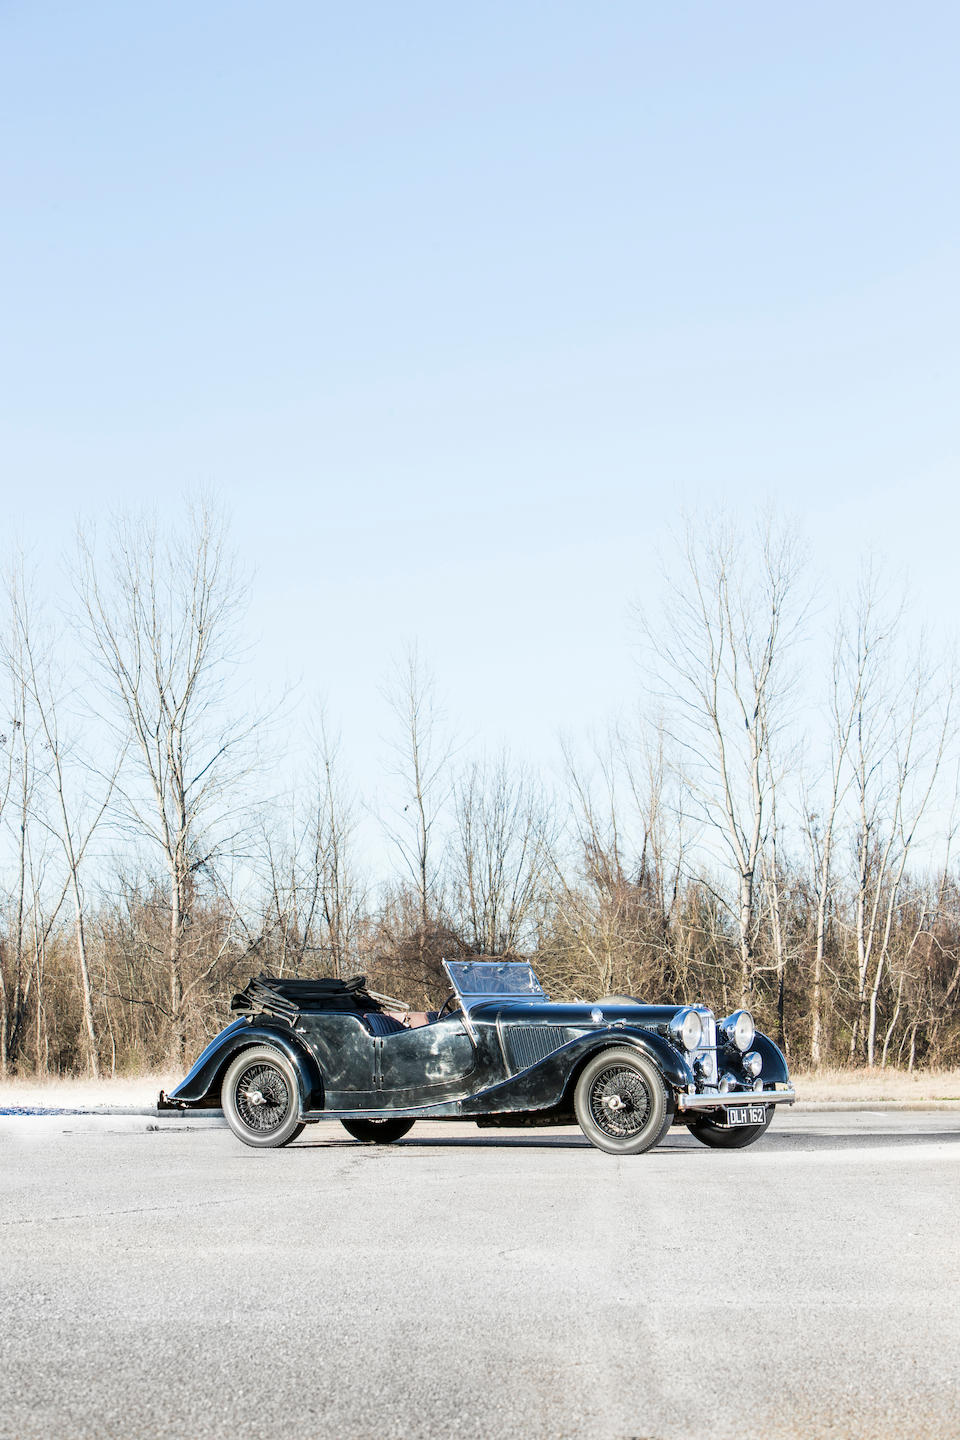 <b>1936 Alvis Speed 25 SB Four Door Tourer</b><br />Chassis no. 13341<br />Engine no. 13623